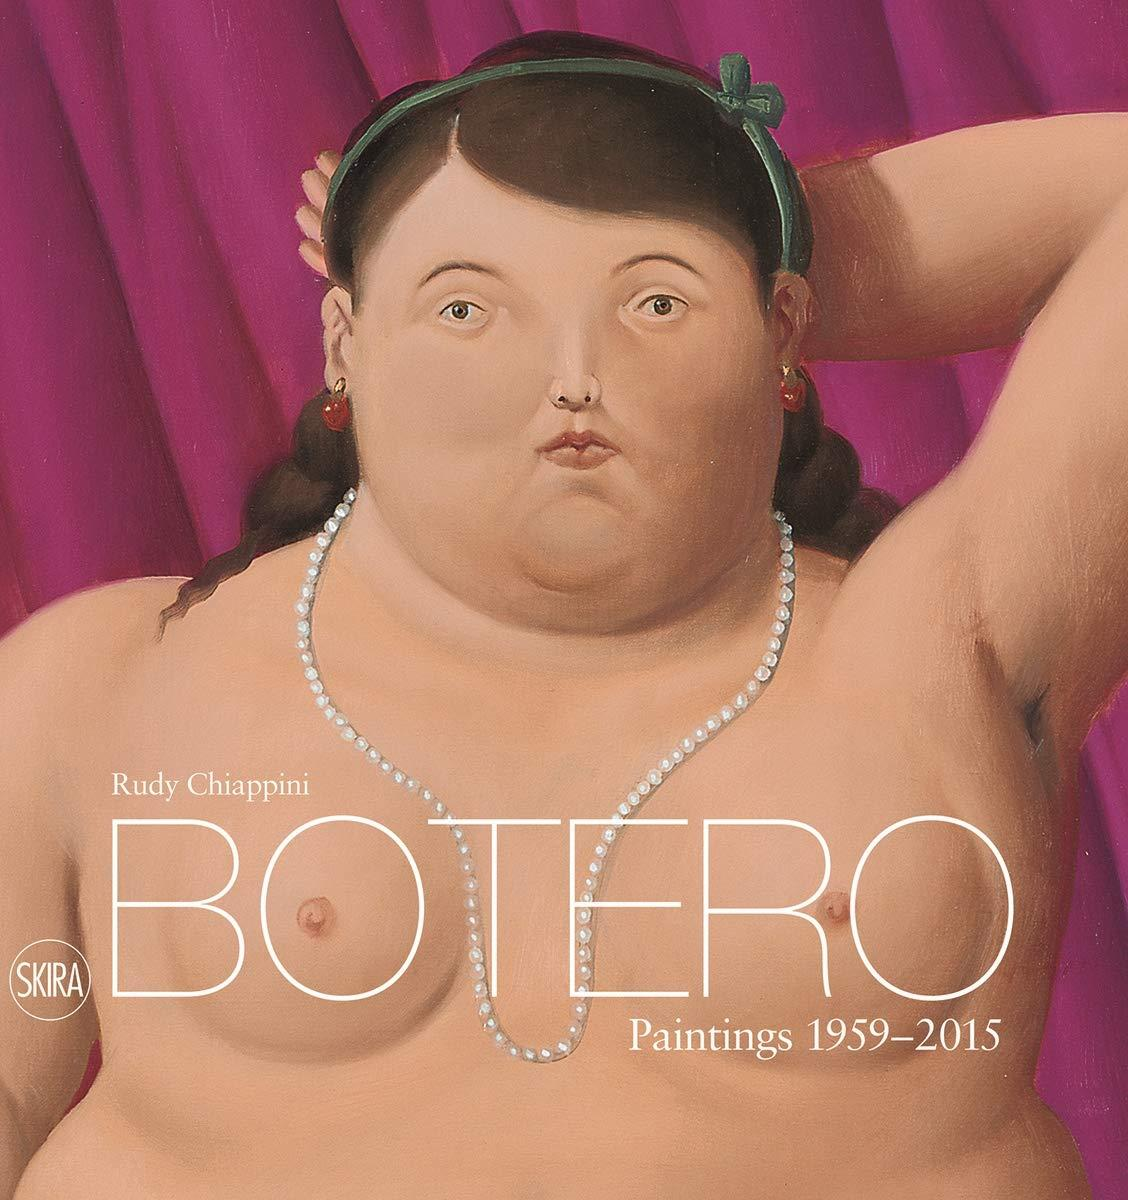 Botero. Paintings 1959-2015